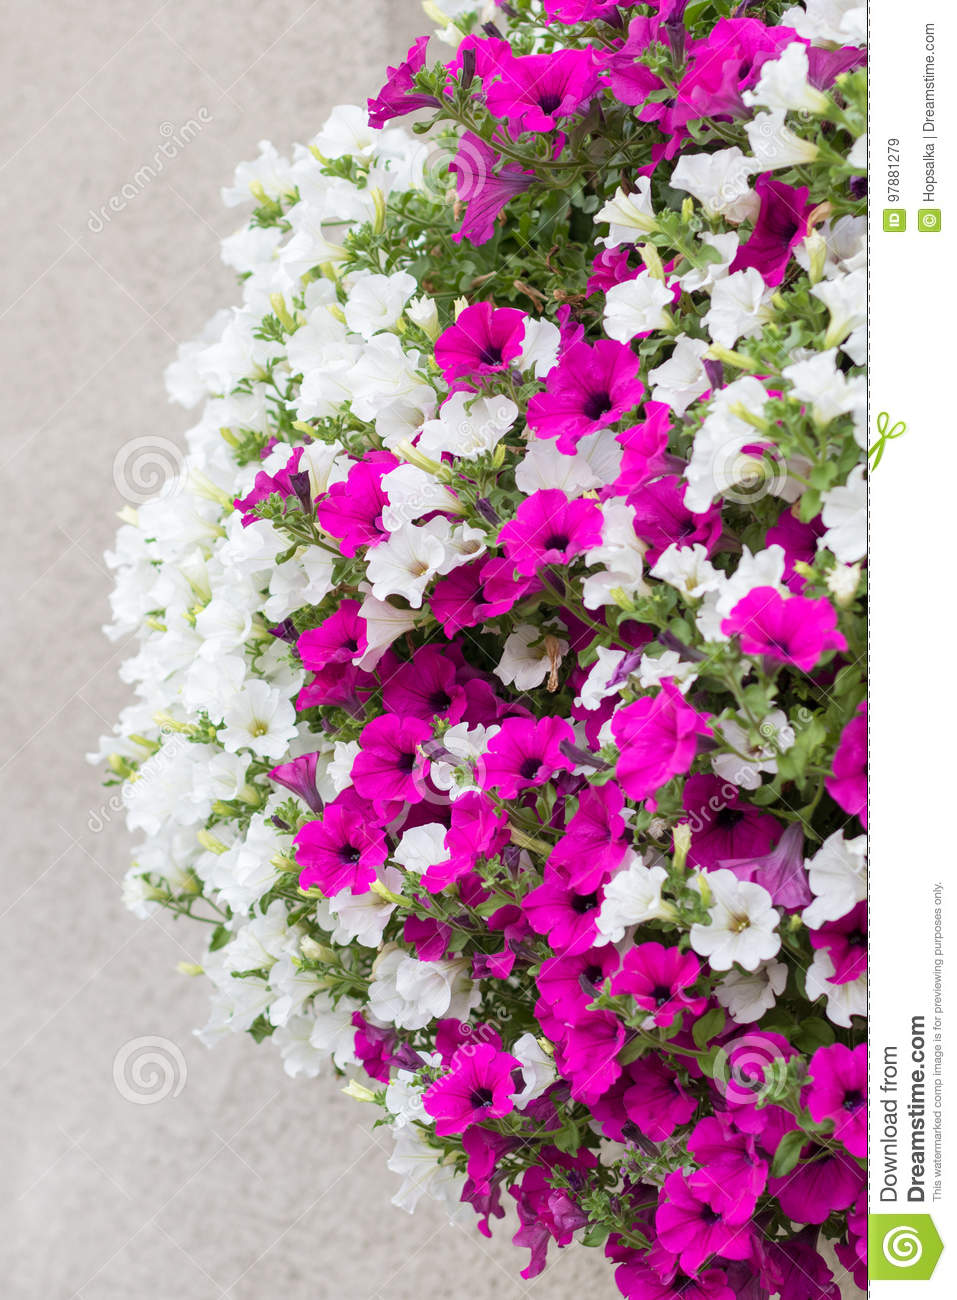 Pink and white surfinia flowers stock image image of flower detail of wall mounted hanging basket with trailing white and pink surfinia flowers mightylinksfo